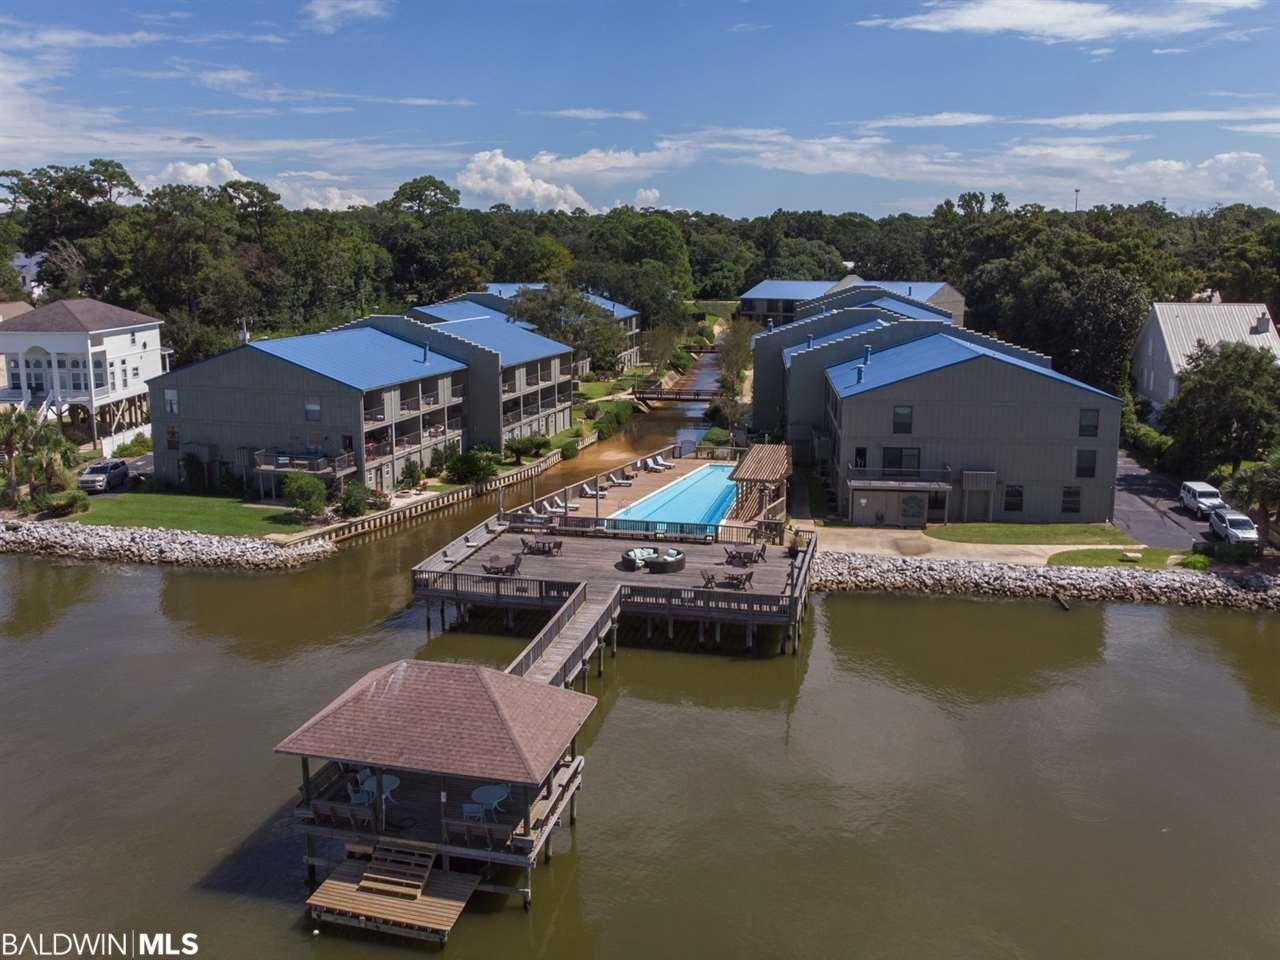 Relax by the pool and enjoy the pier. Enjoy the view from your covered balcony. Walk & bike to the many parks and piers. Close to Downtown Fairhope shopping and dining. Common amenities include a large gated salt water pool with showers and a bathroom. Spacious bedrooms with private bathrooms are on the top level with oversize closets. Monthly dues cover the common area insurance, termite, pest coverage, flood insurance, landscaping, city water, trash, sewer, management fees and reserve funds.